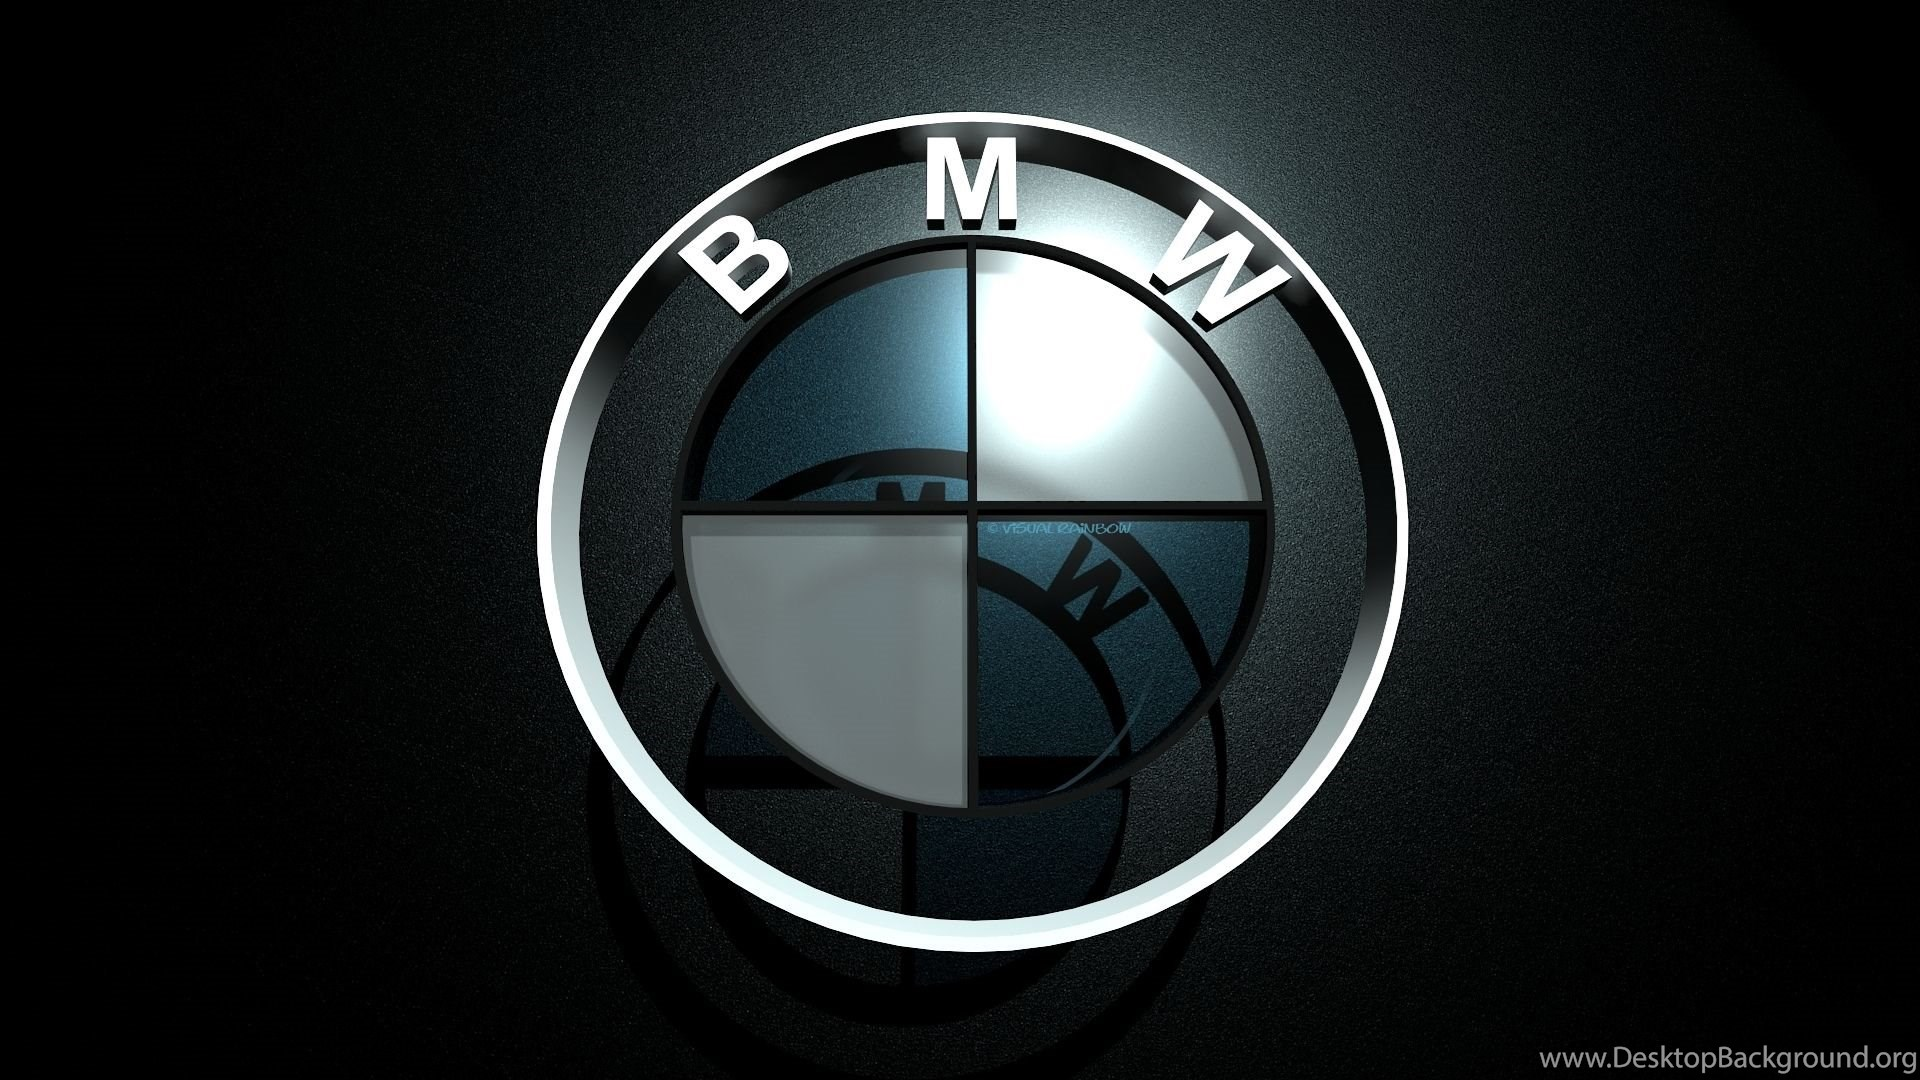 Bmw Logo Wallpaper Hd 0 Jpg Desktop Background